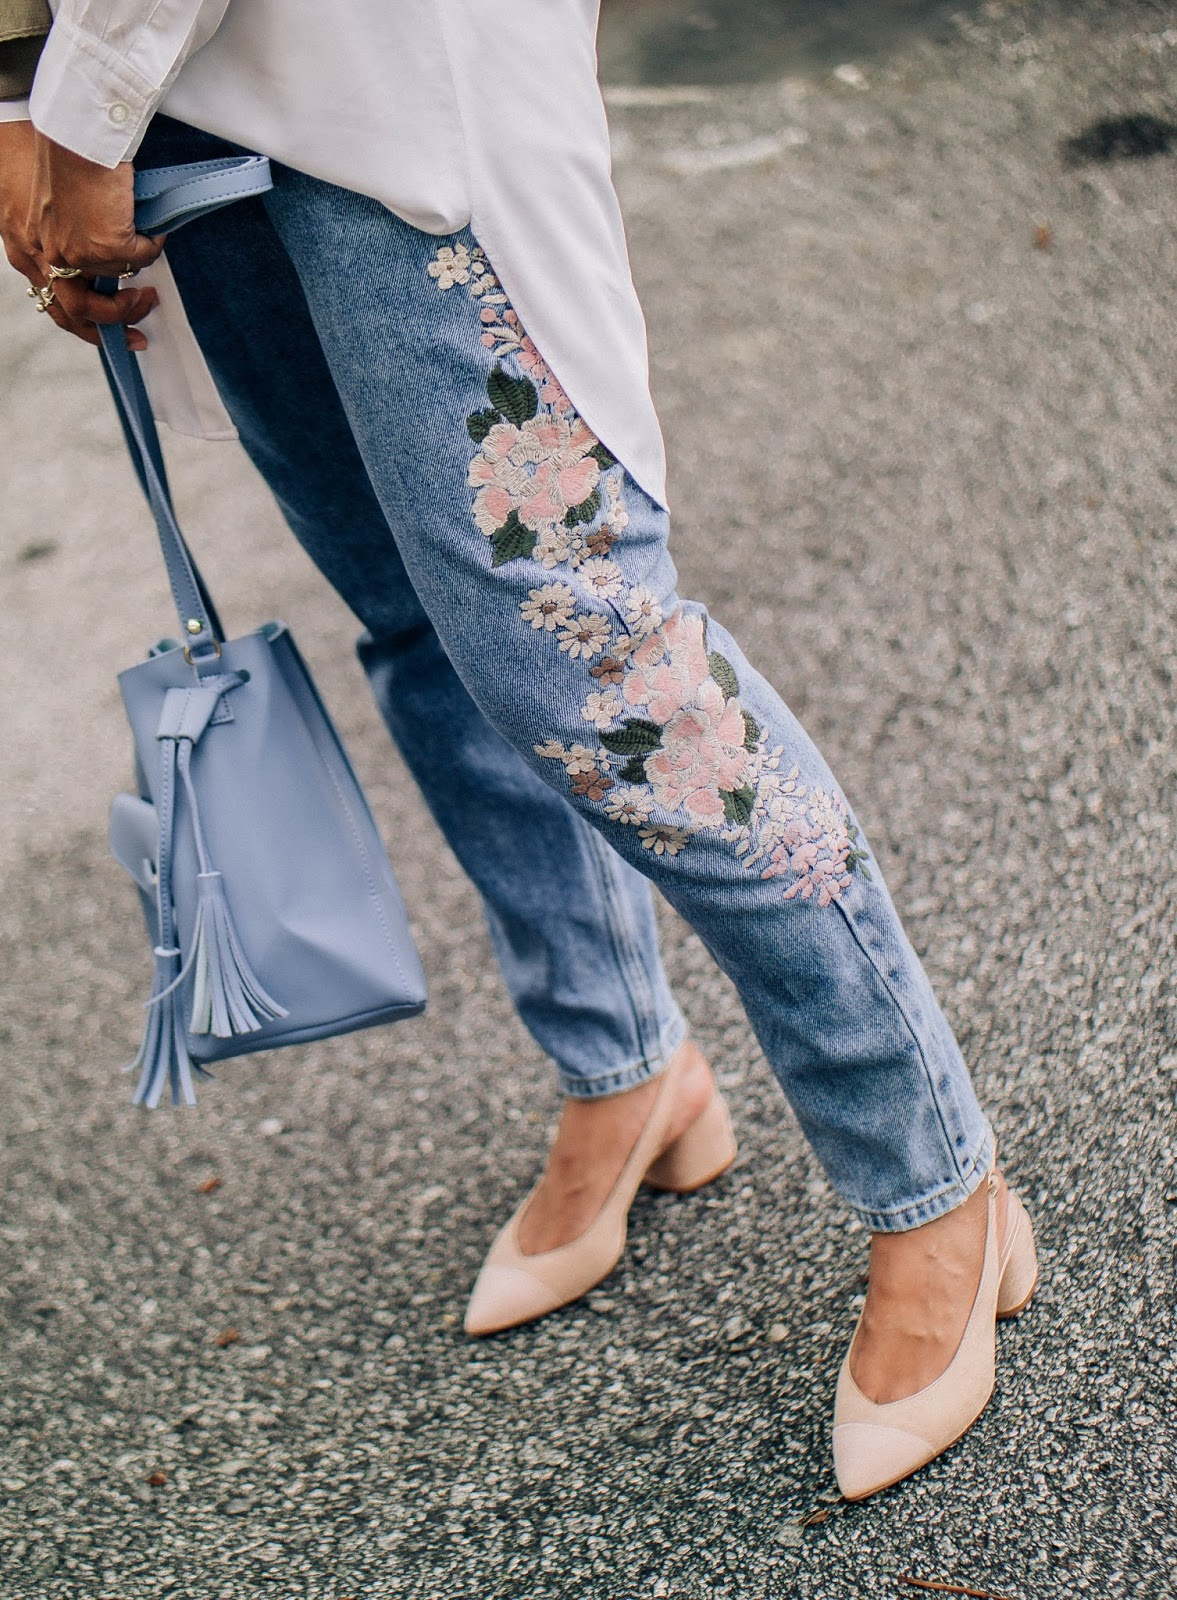 Floral Embroidered Jeans Nude Slingback Heels